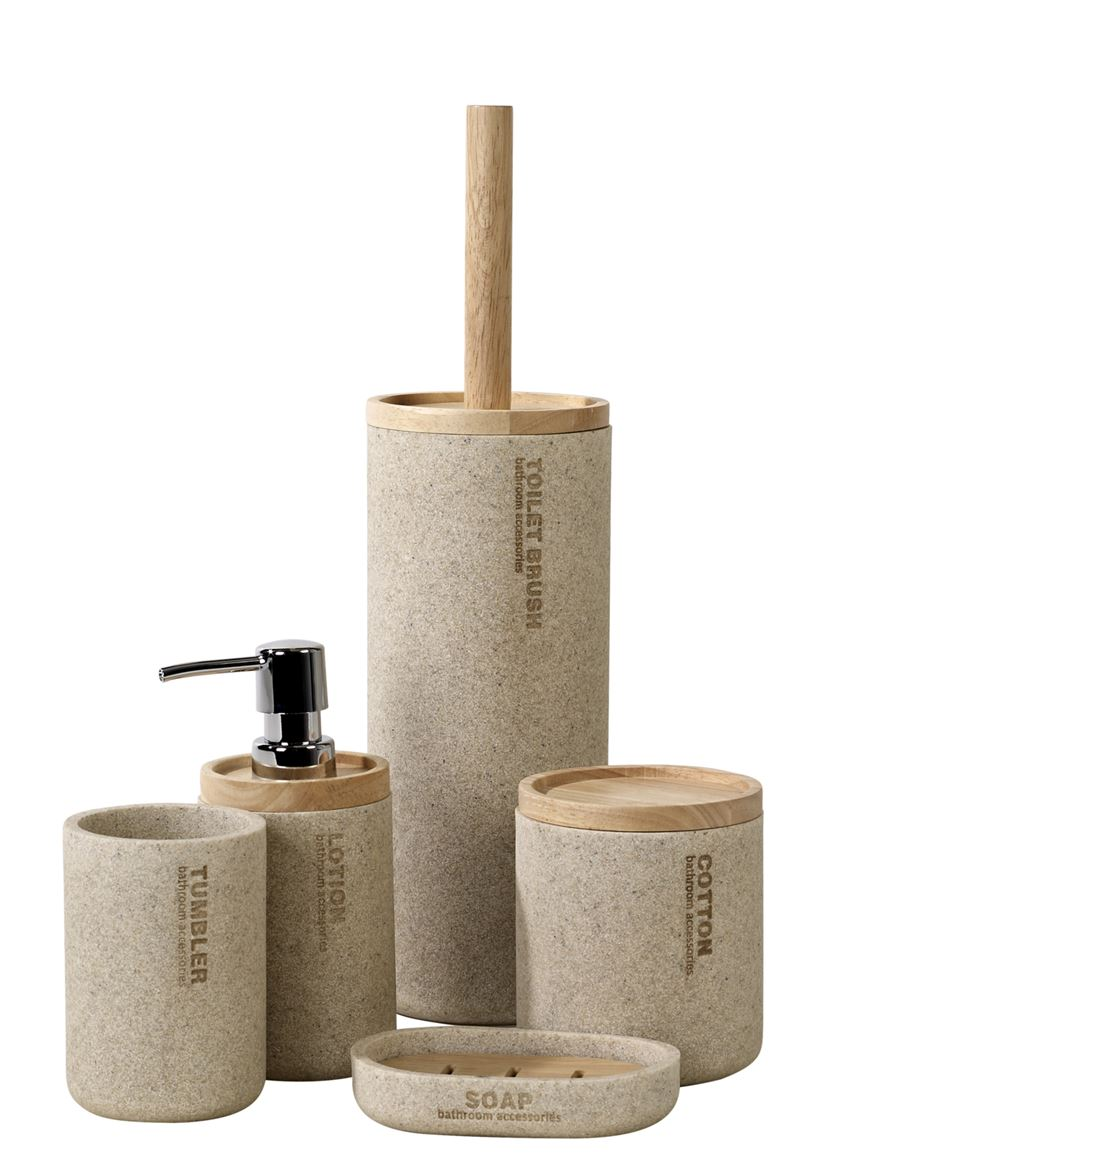 NEW RESIN WC-borstel in houder naturel H 38,5 cm; Ø 10,3 cm_new-resin-wc-borstel-in-houder-naturel-h-38,5-cm;-ø-10,3-cm